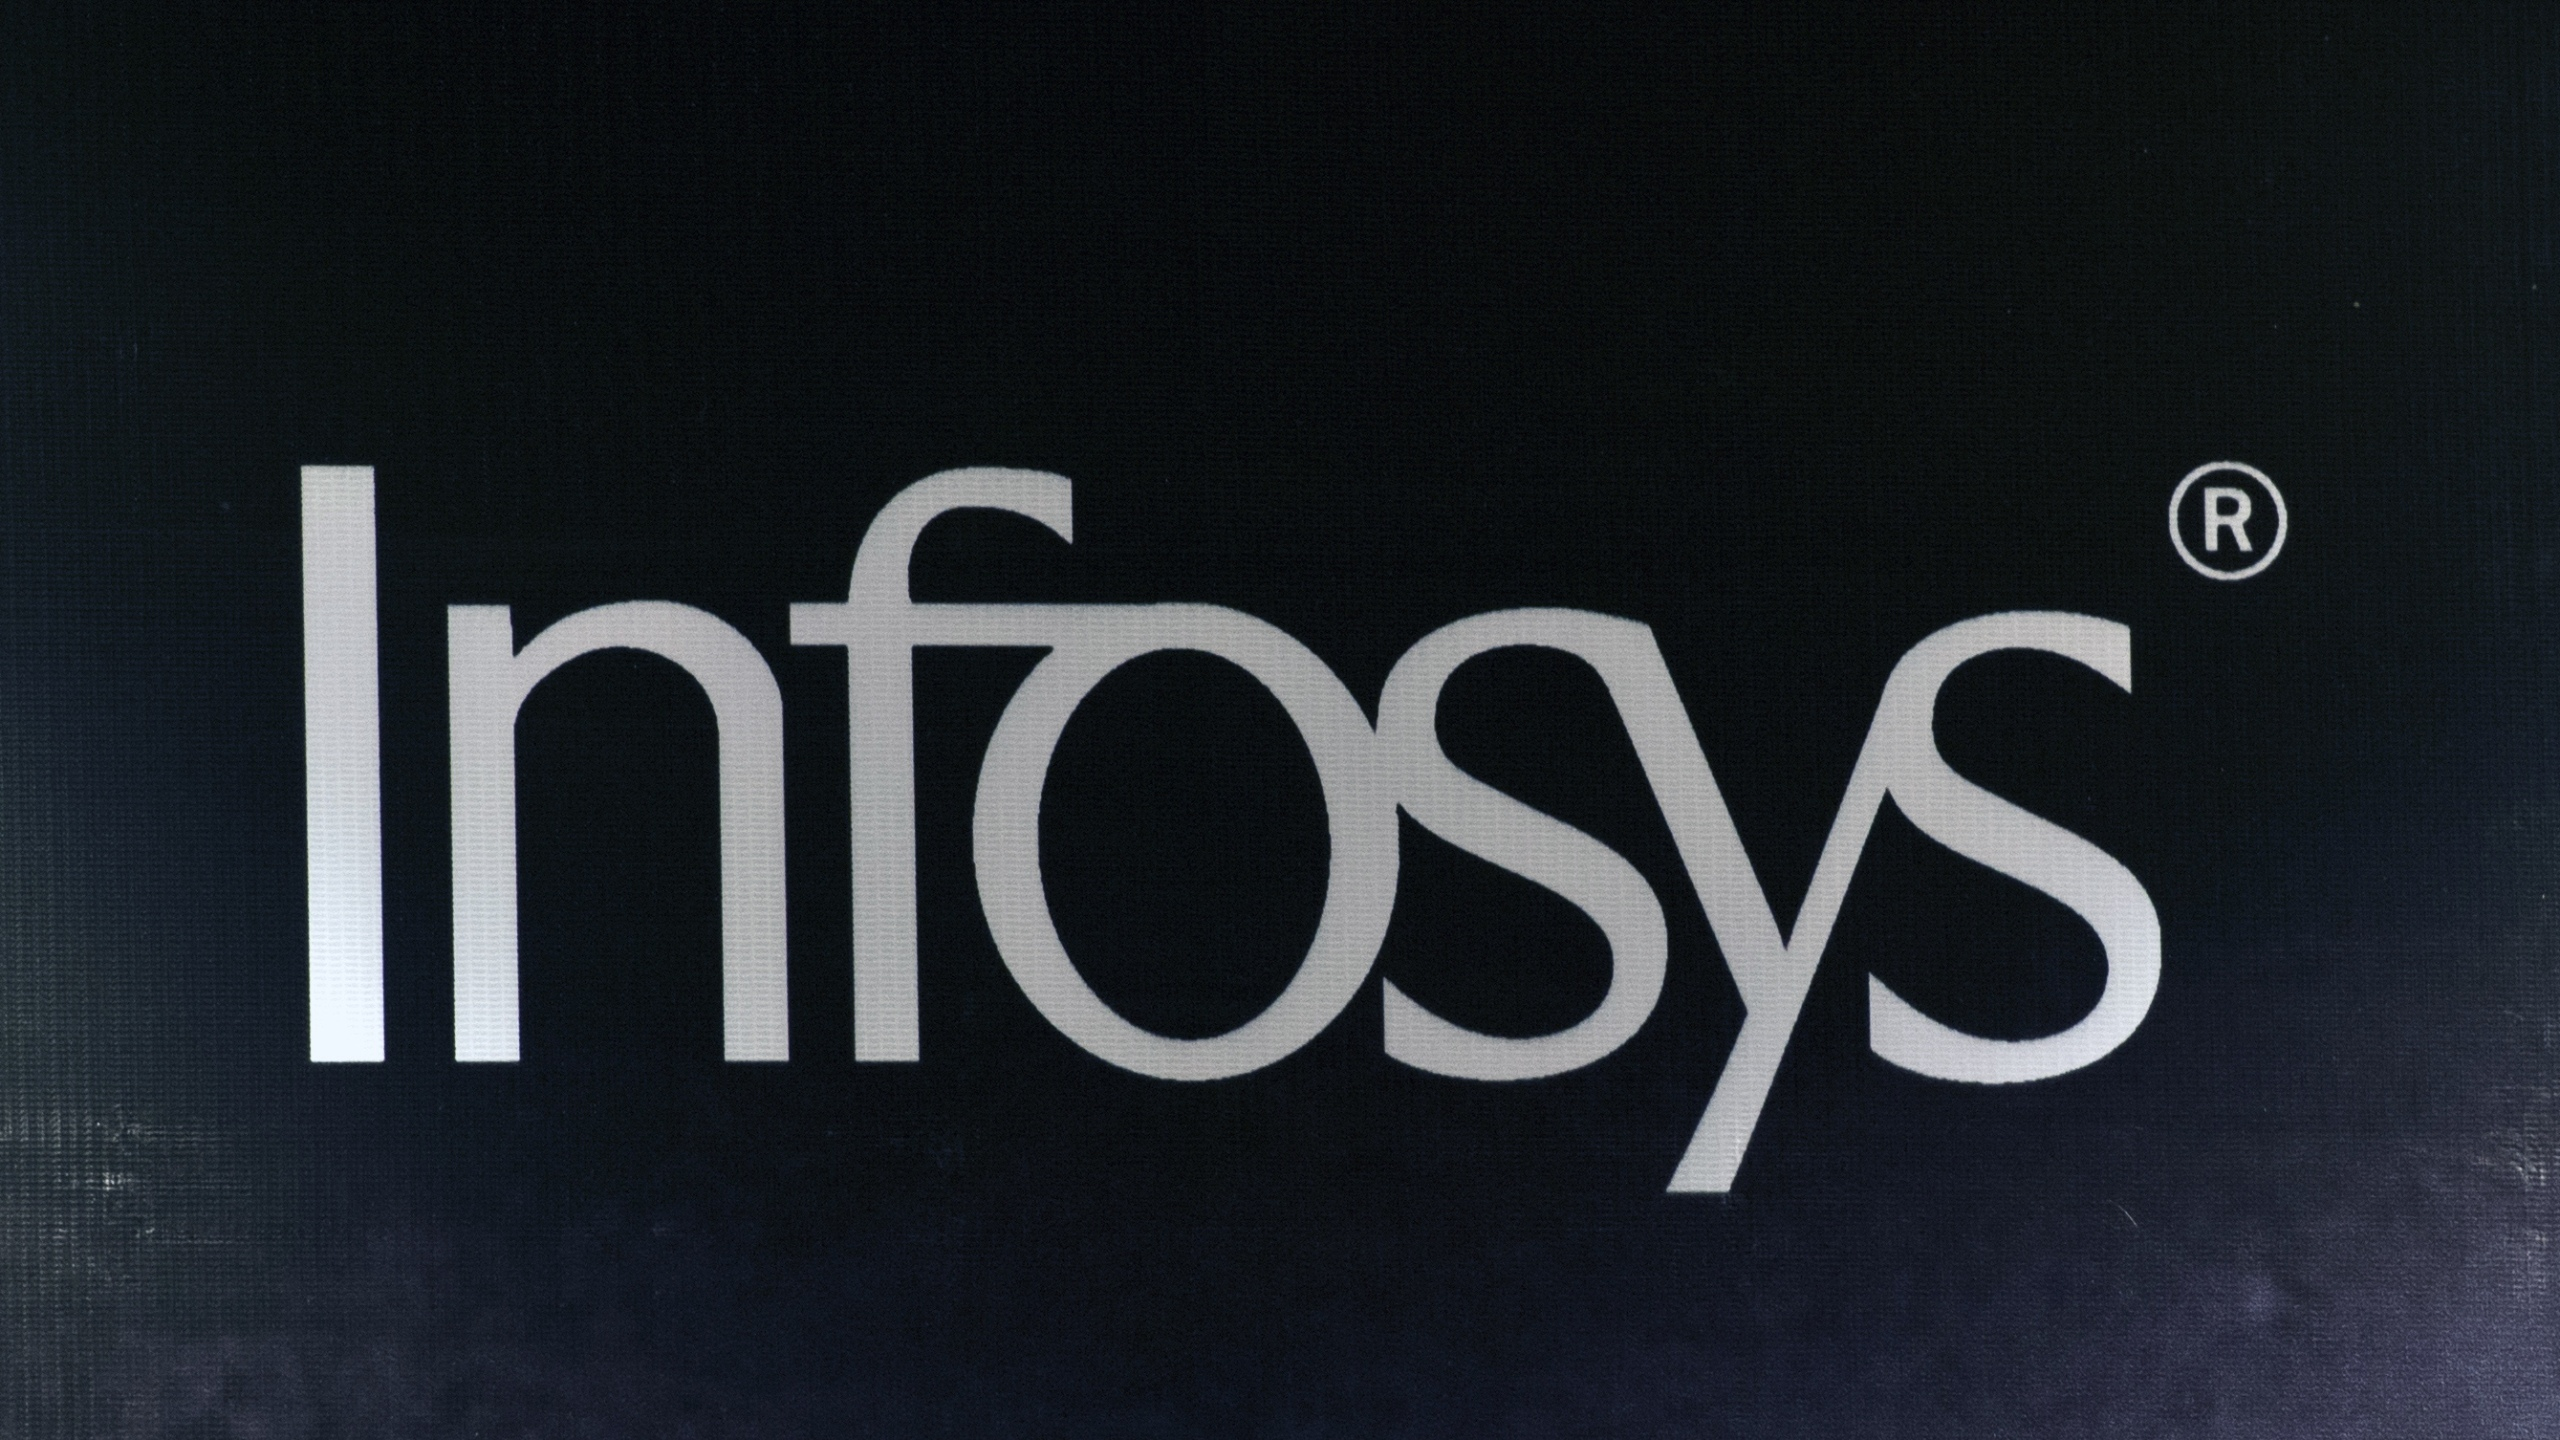 The company logo for Infosys is pictured in New Delhi on April 16, 2013. (Credit: PRAKASH SINGH/AFP via Getty Images)